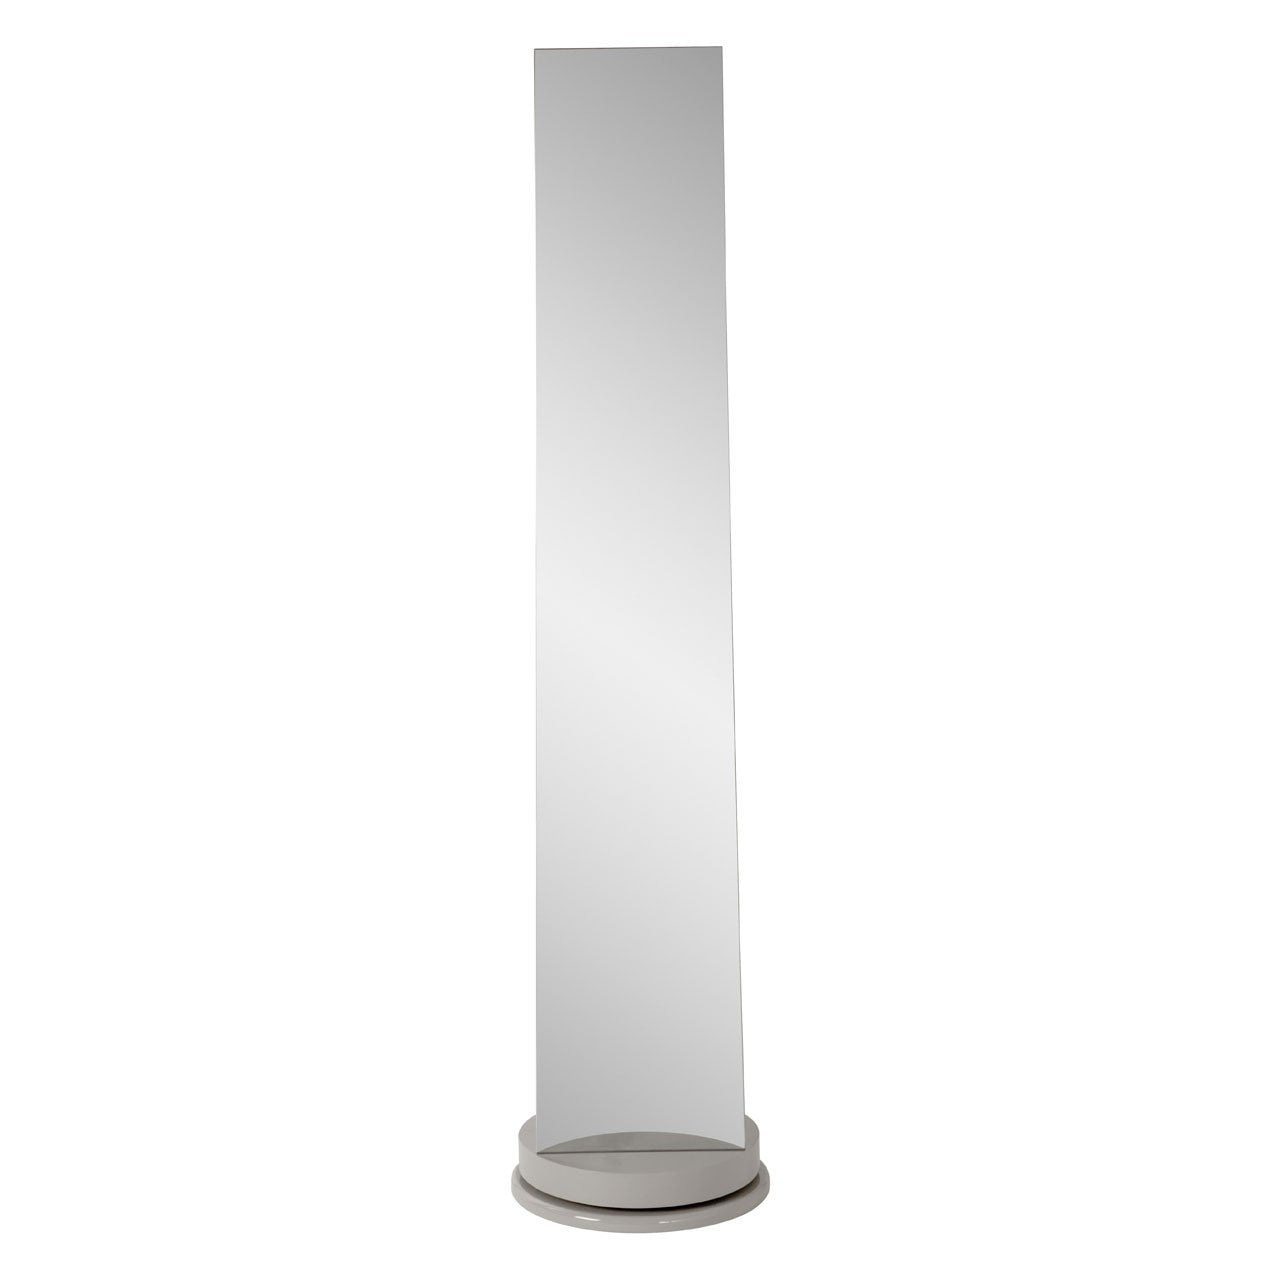 Grey Floor Standing Revolving Mirror with Storage